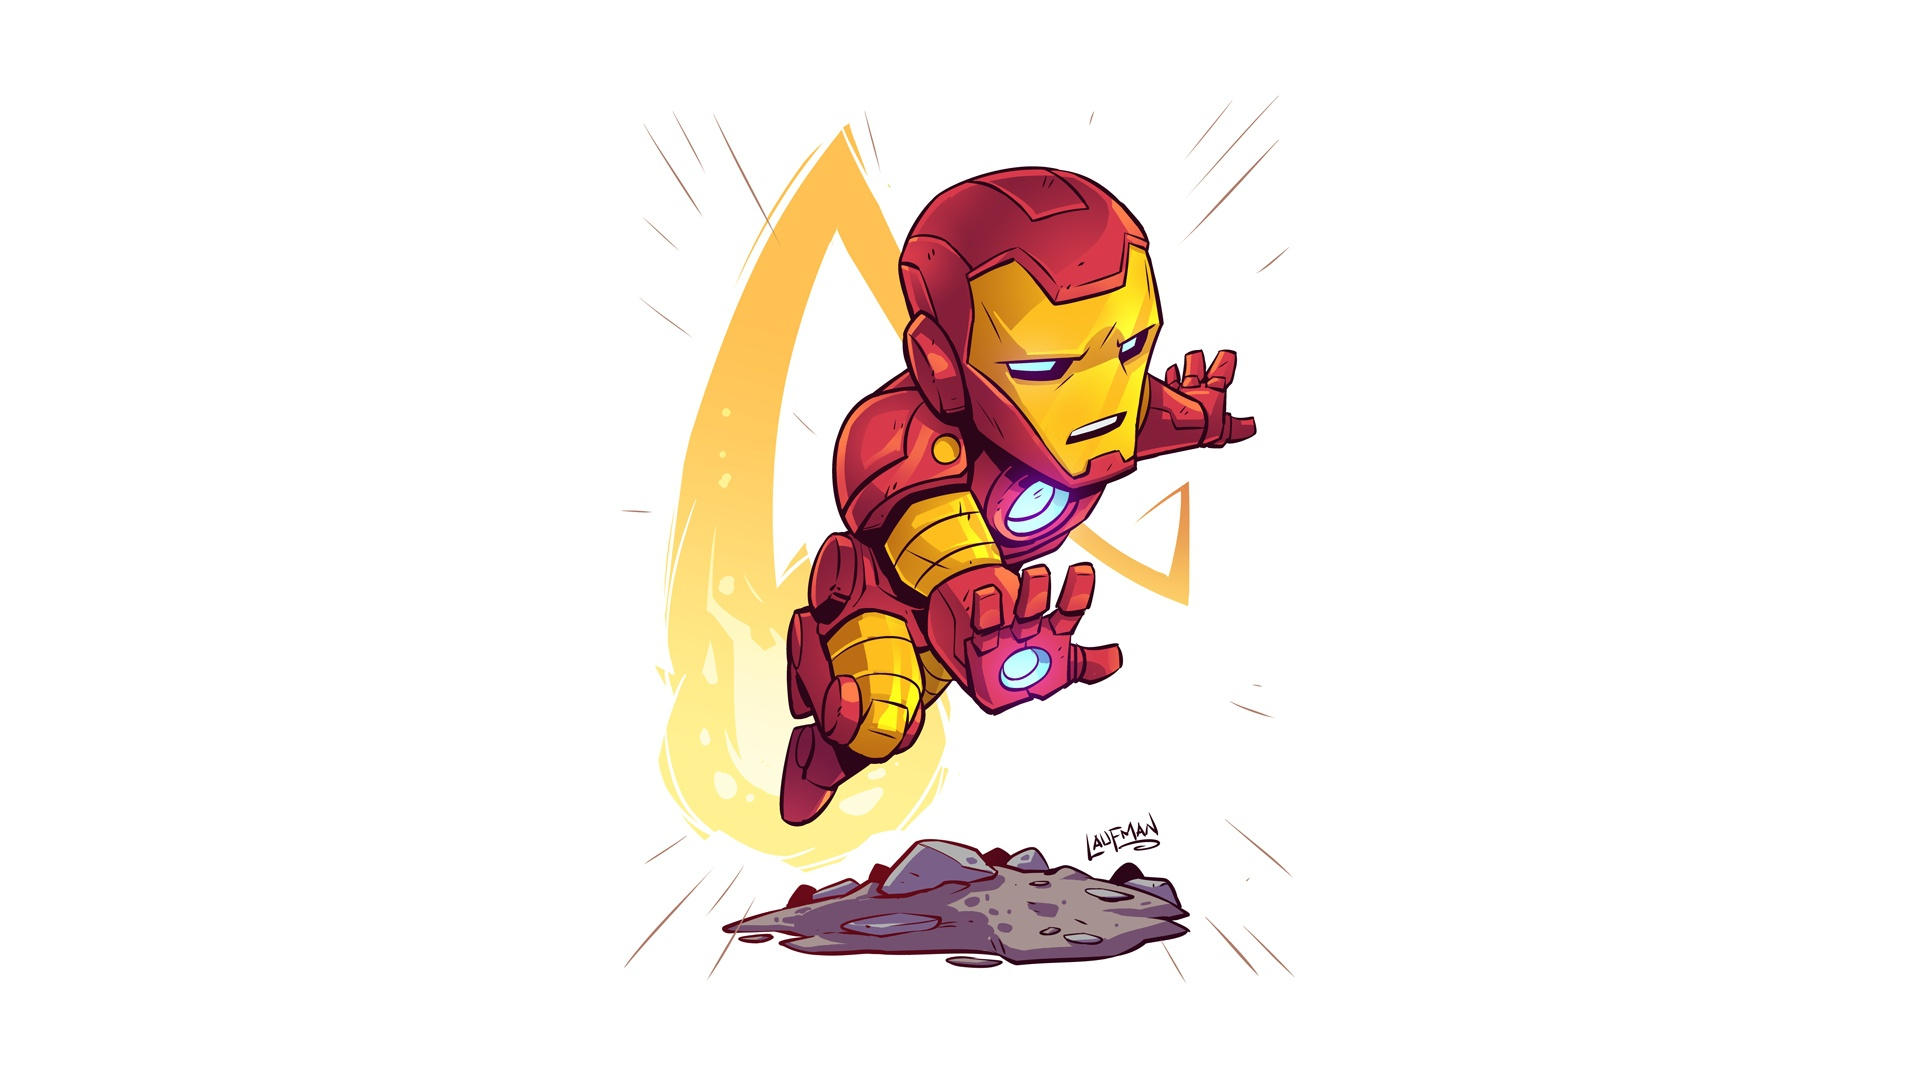 General 1920x1080 Iron Man artwork white background simple background Marvel Comics Derek Laufman